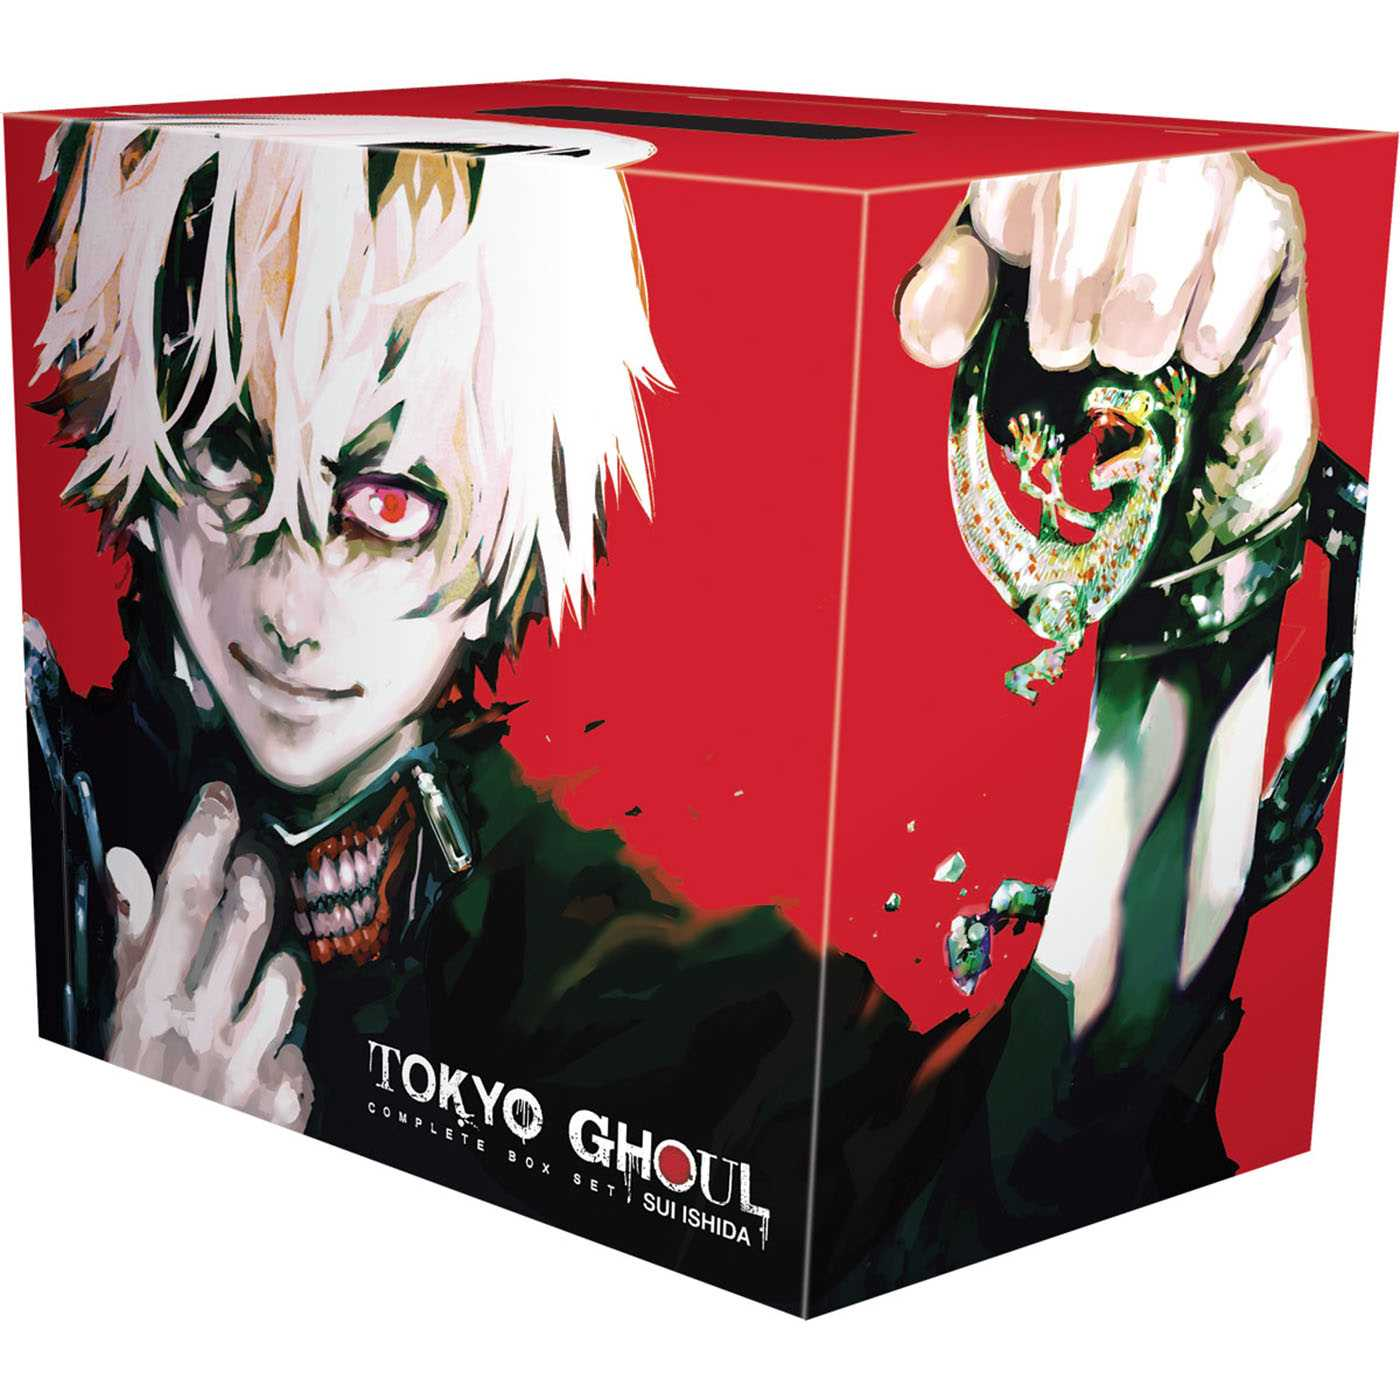 Tokyo Ghoul Complete Box Set : Includes vols. 1-14 with premium